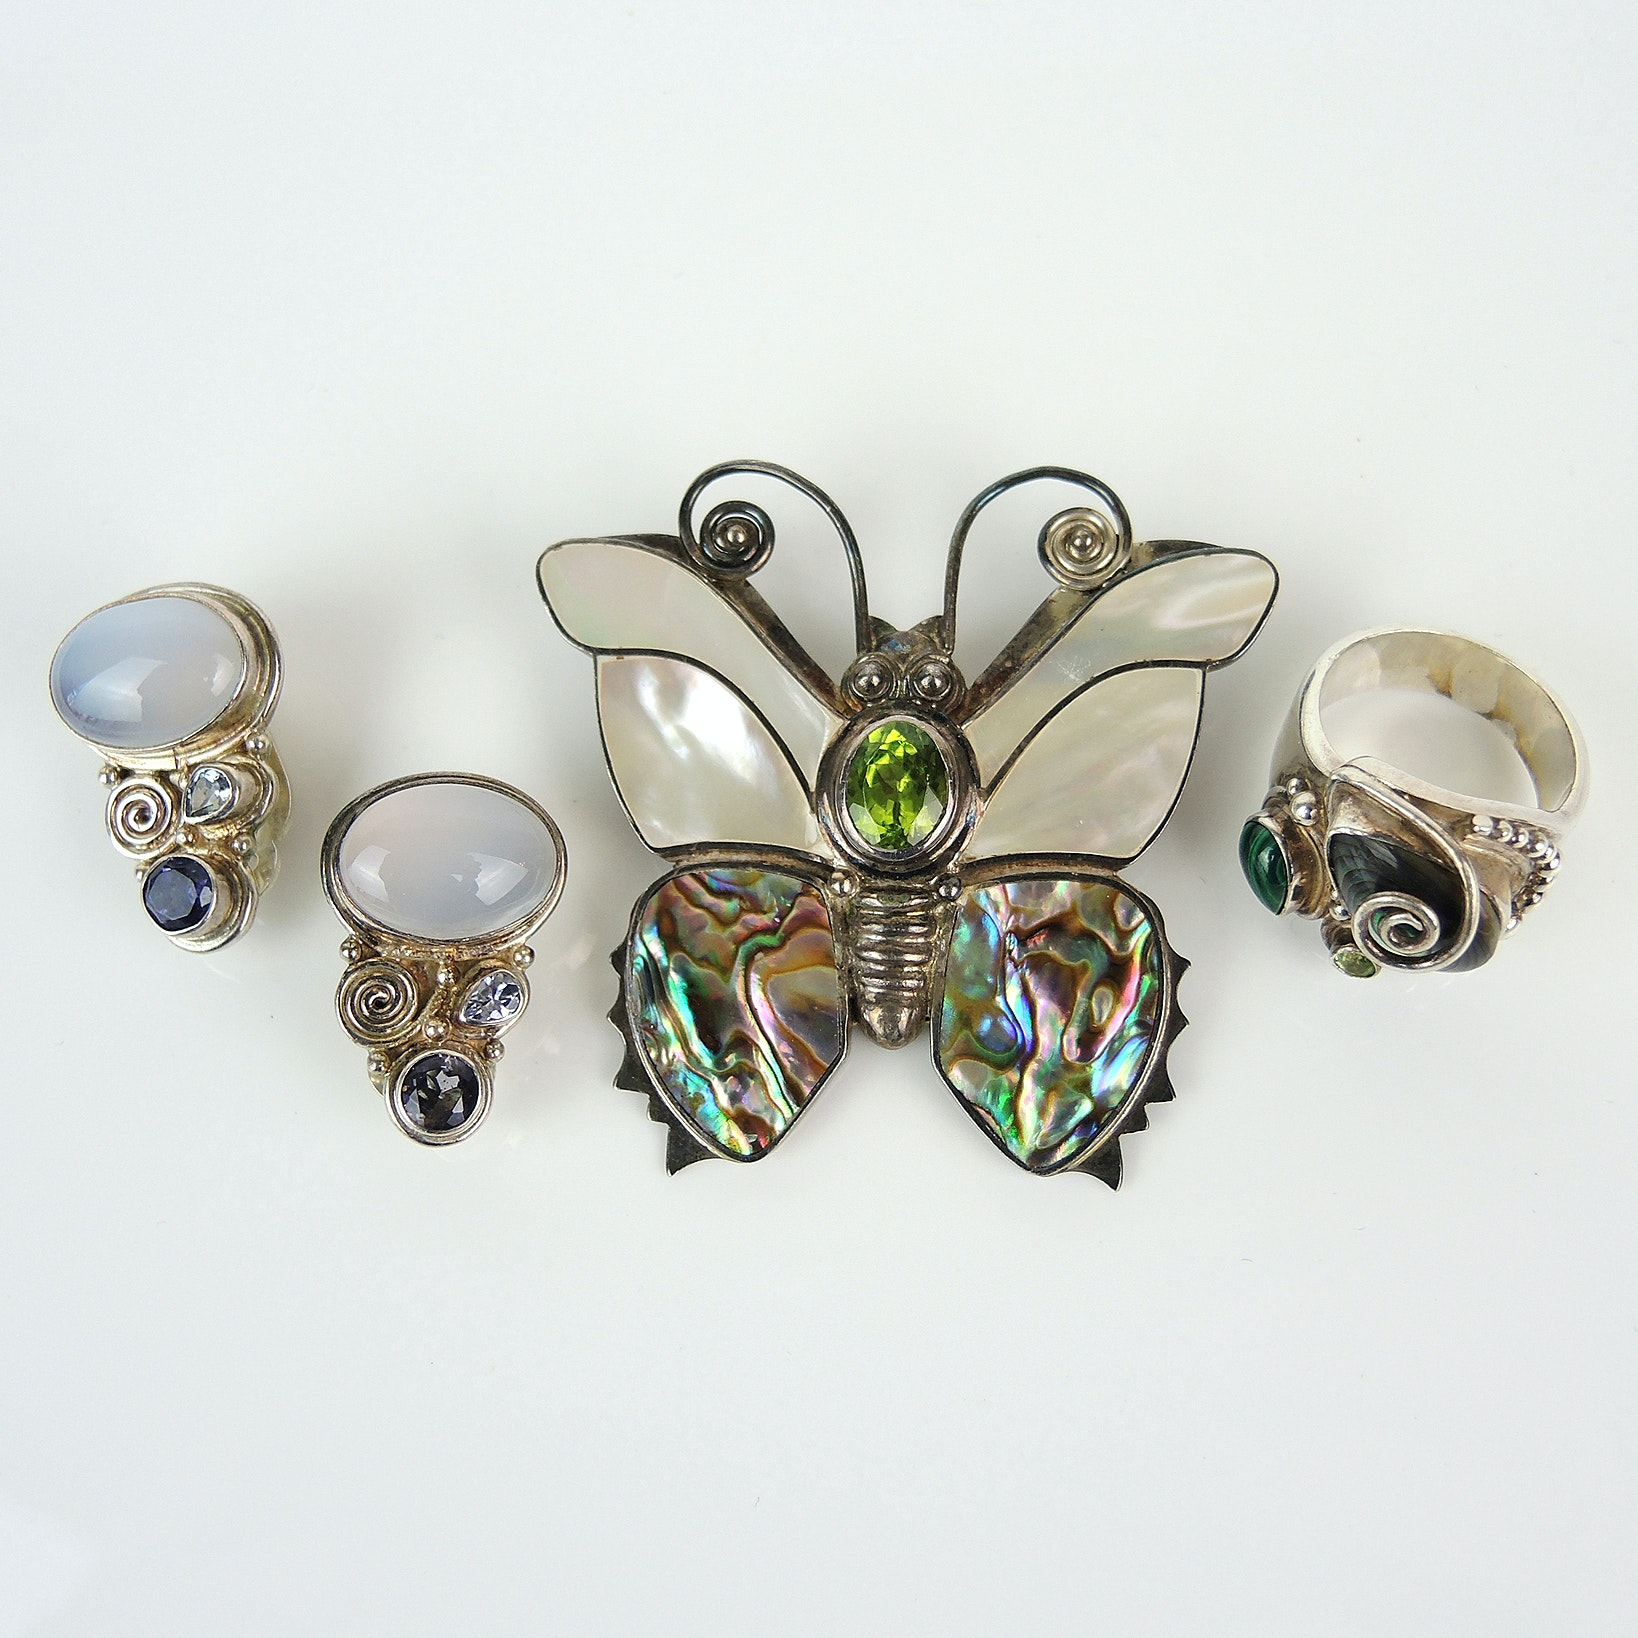 Sajen Sterling Silver Brooch, Earrings and Ring